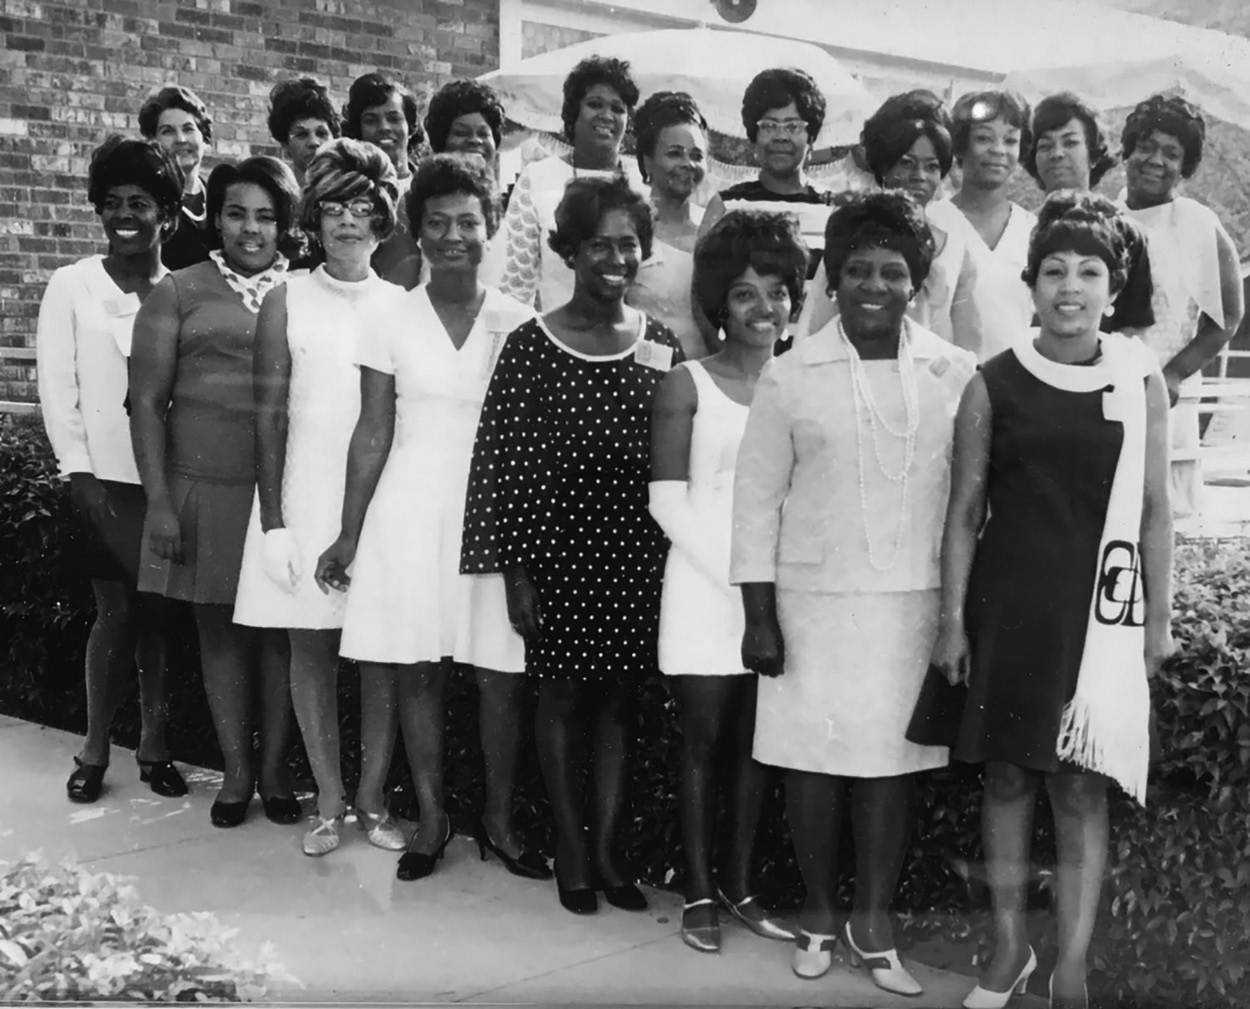 WHAT OTHERS ARE SAYING: Black Women's Organizations Matter